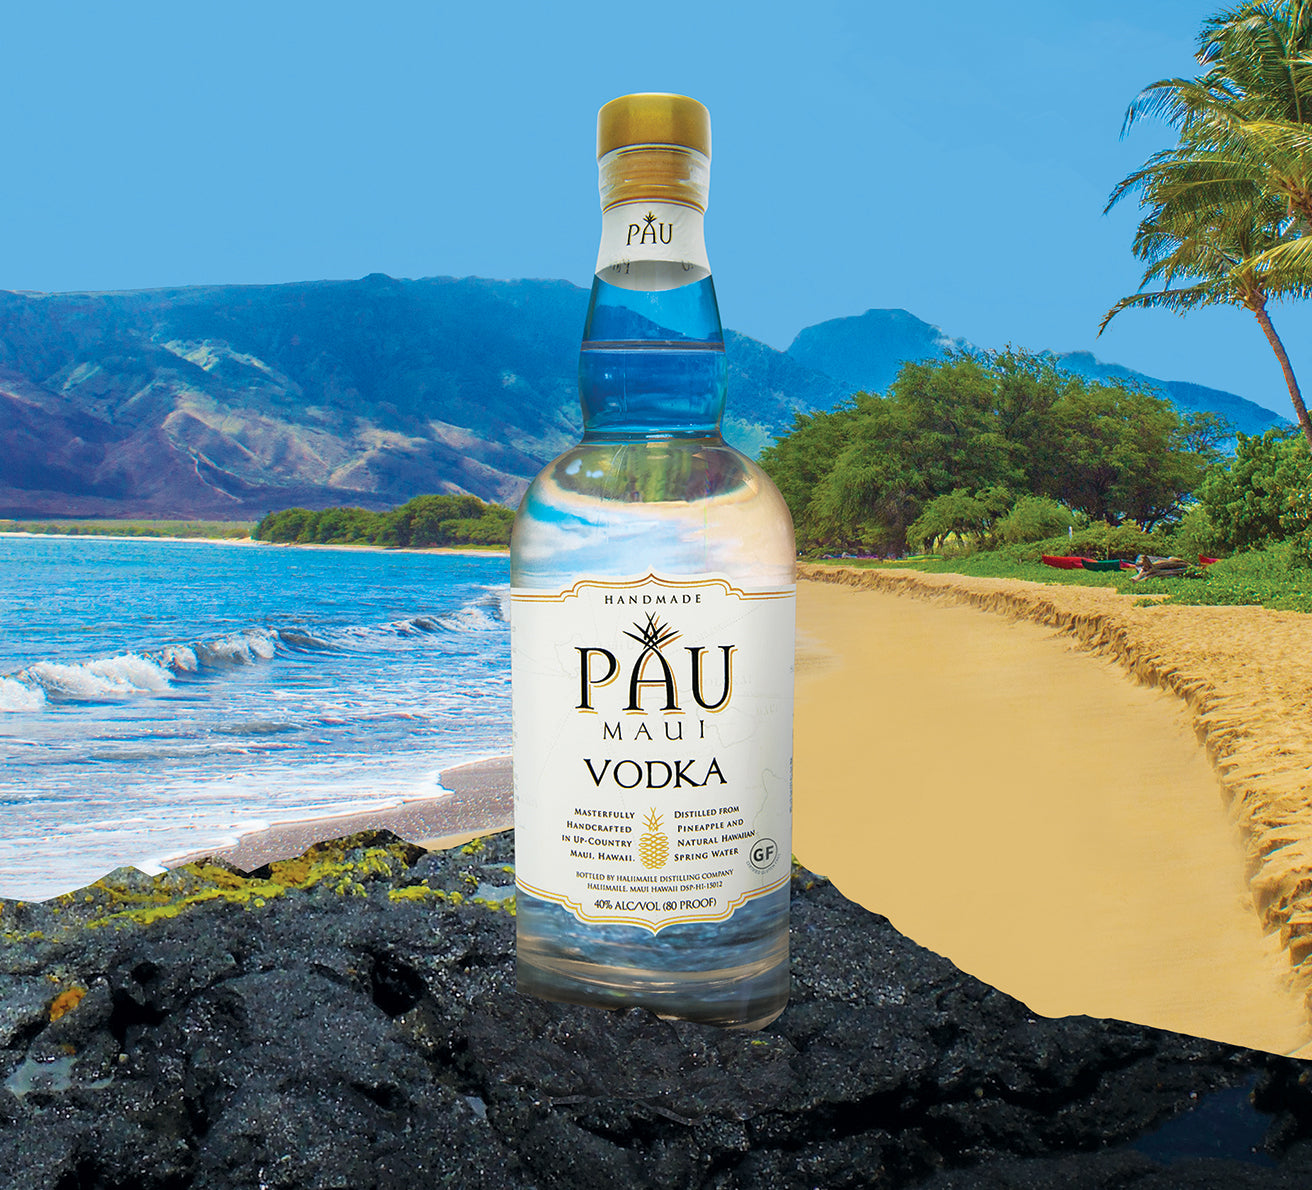 PAU Maui Vodka on Maui Beach